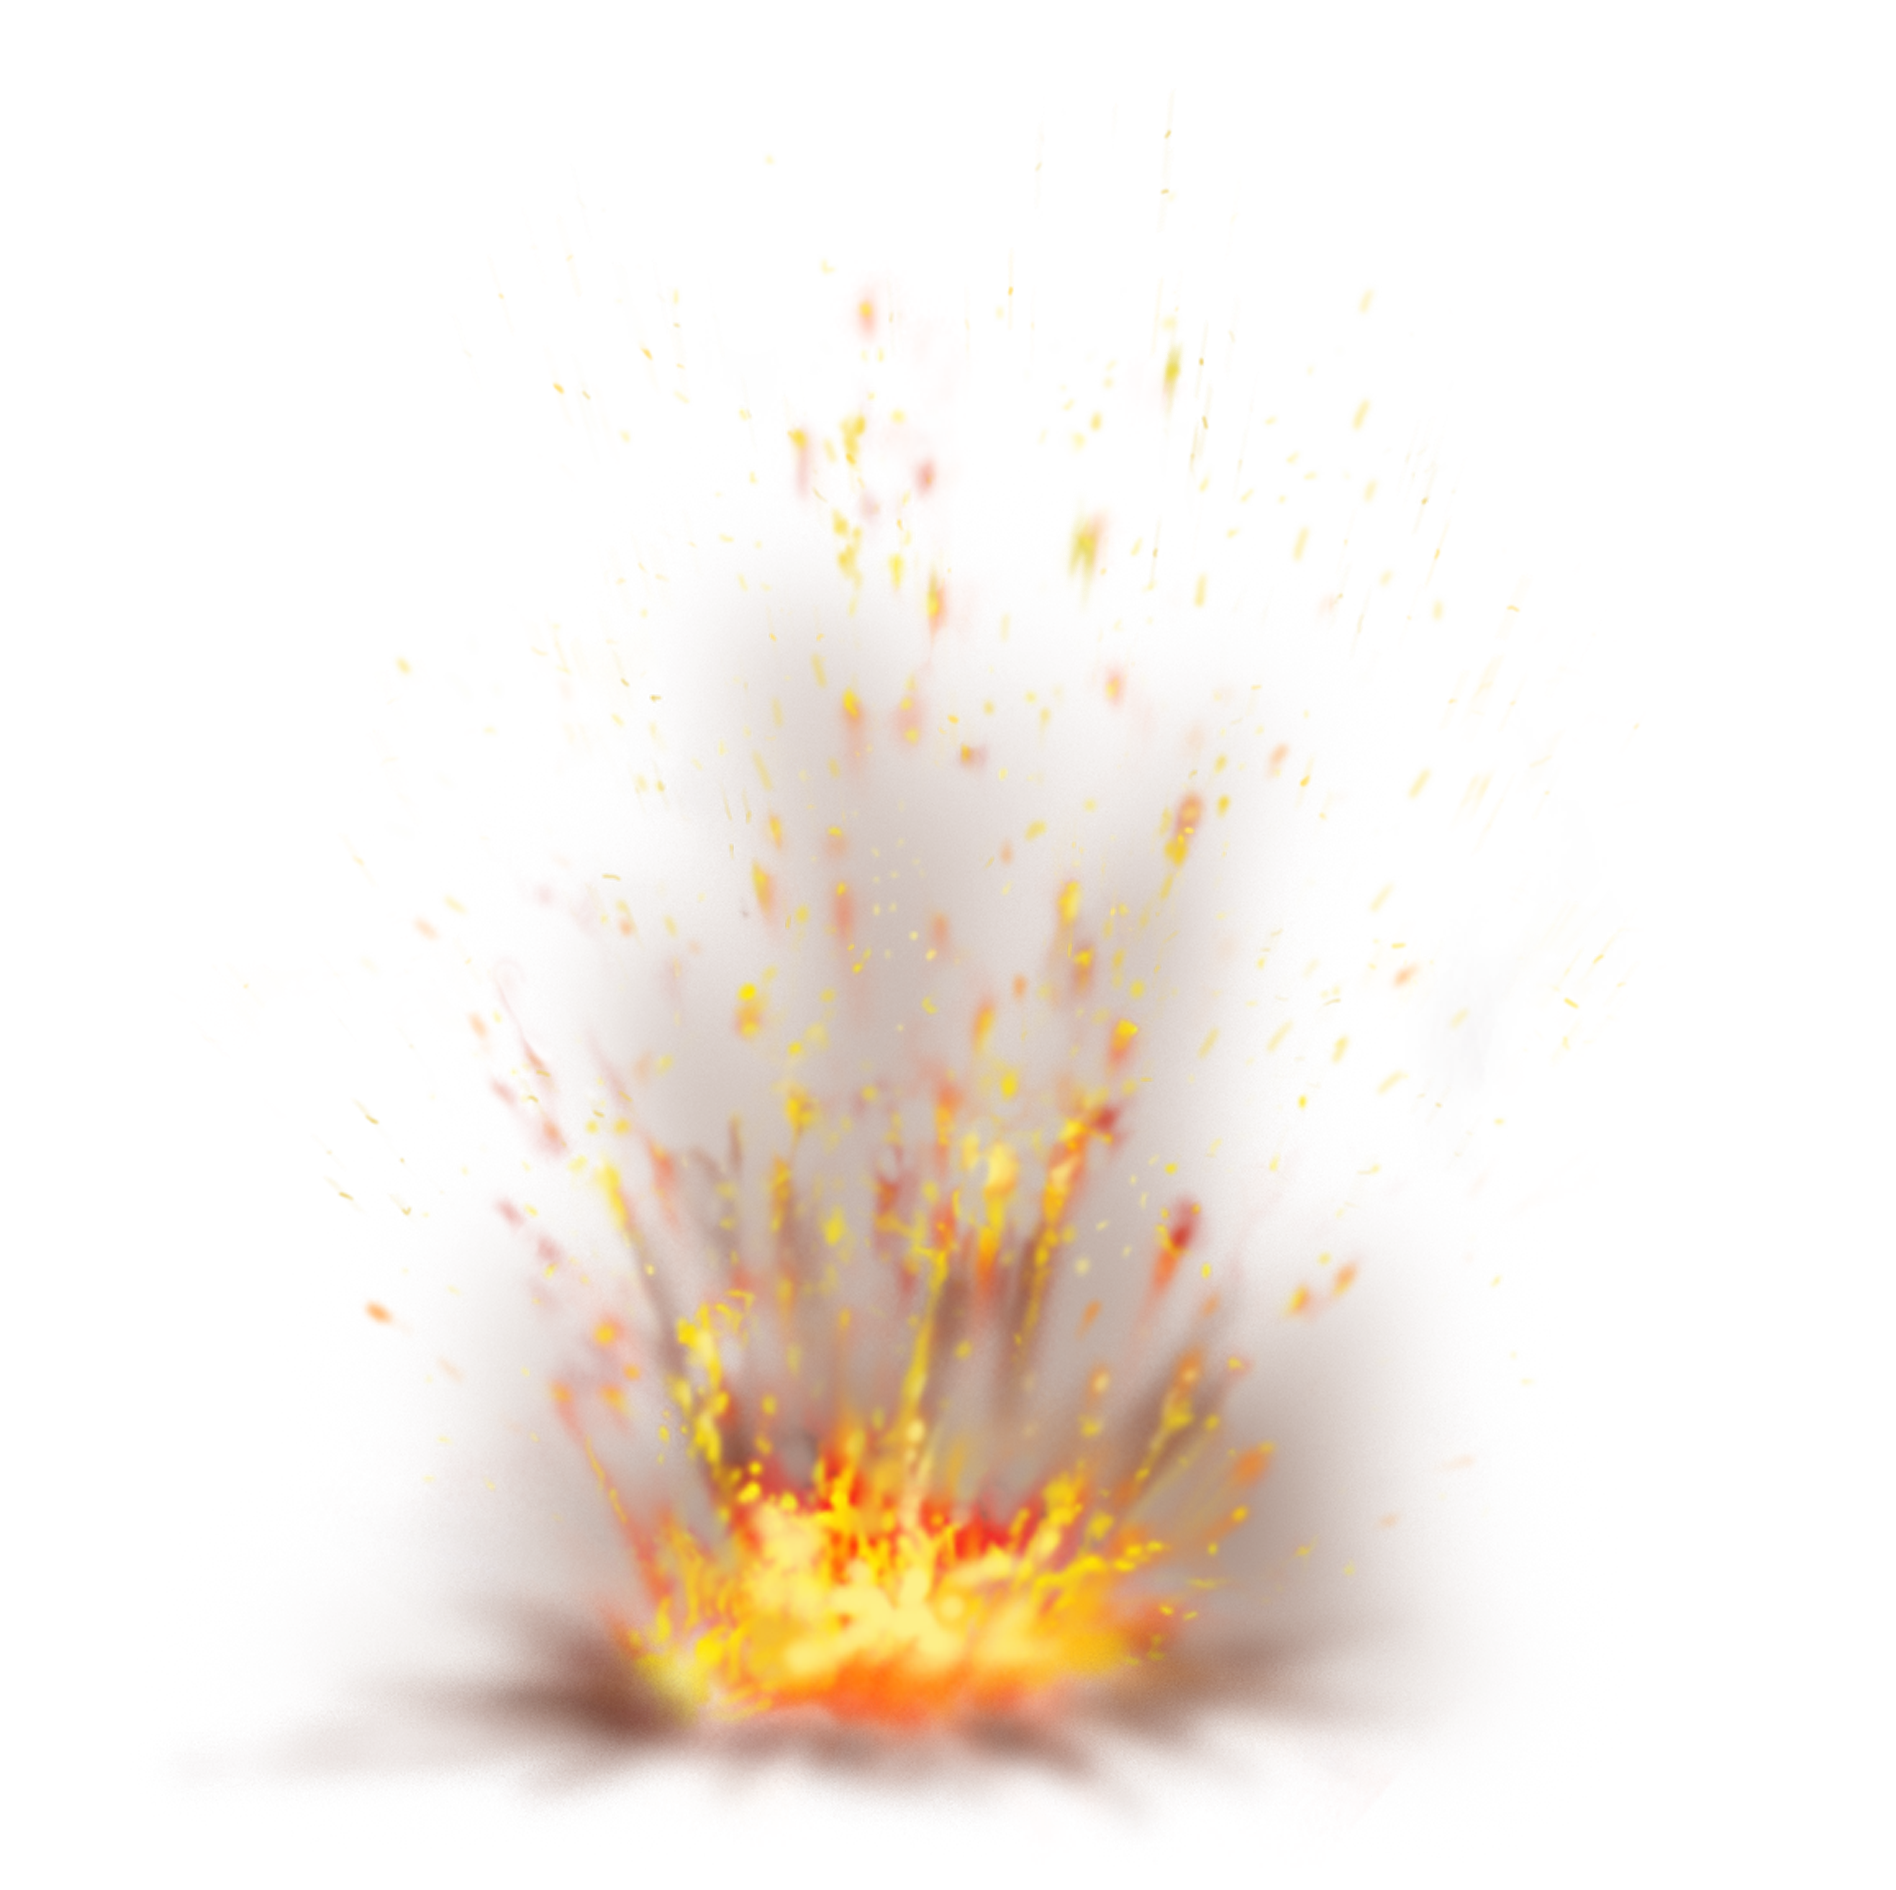 Fire spark png. Firefox with sparks clipart